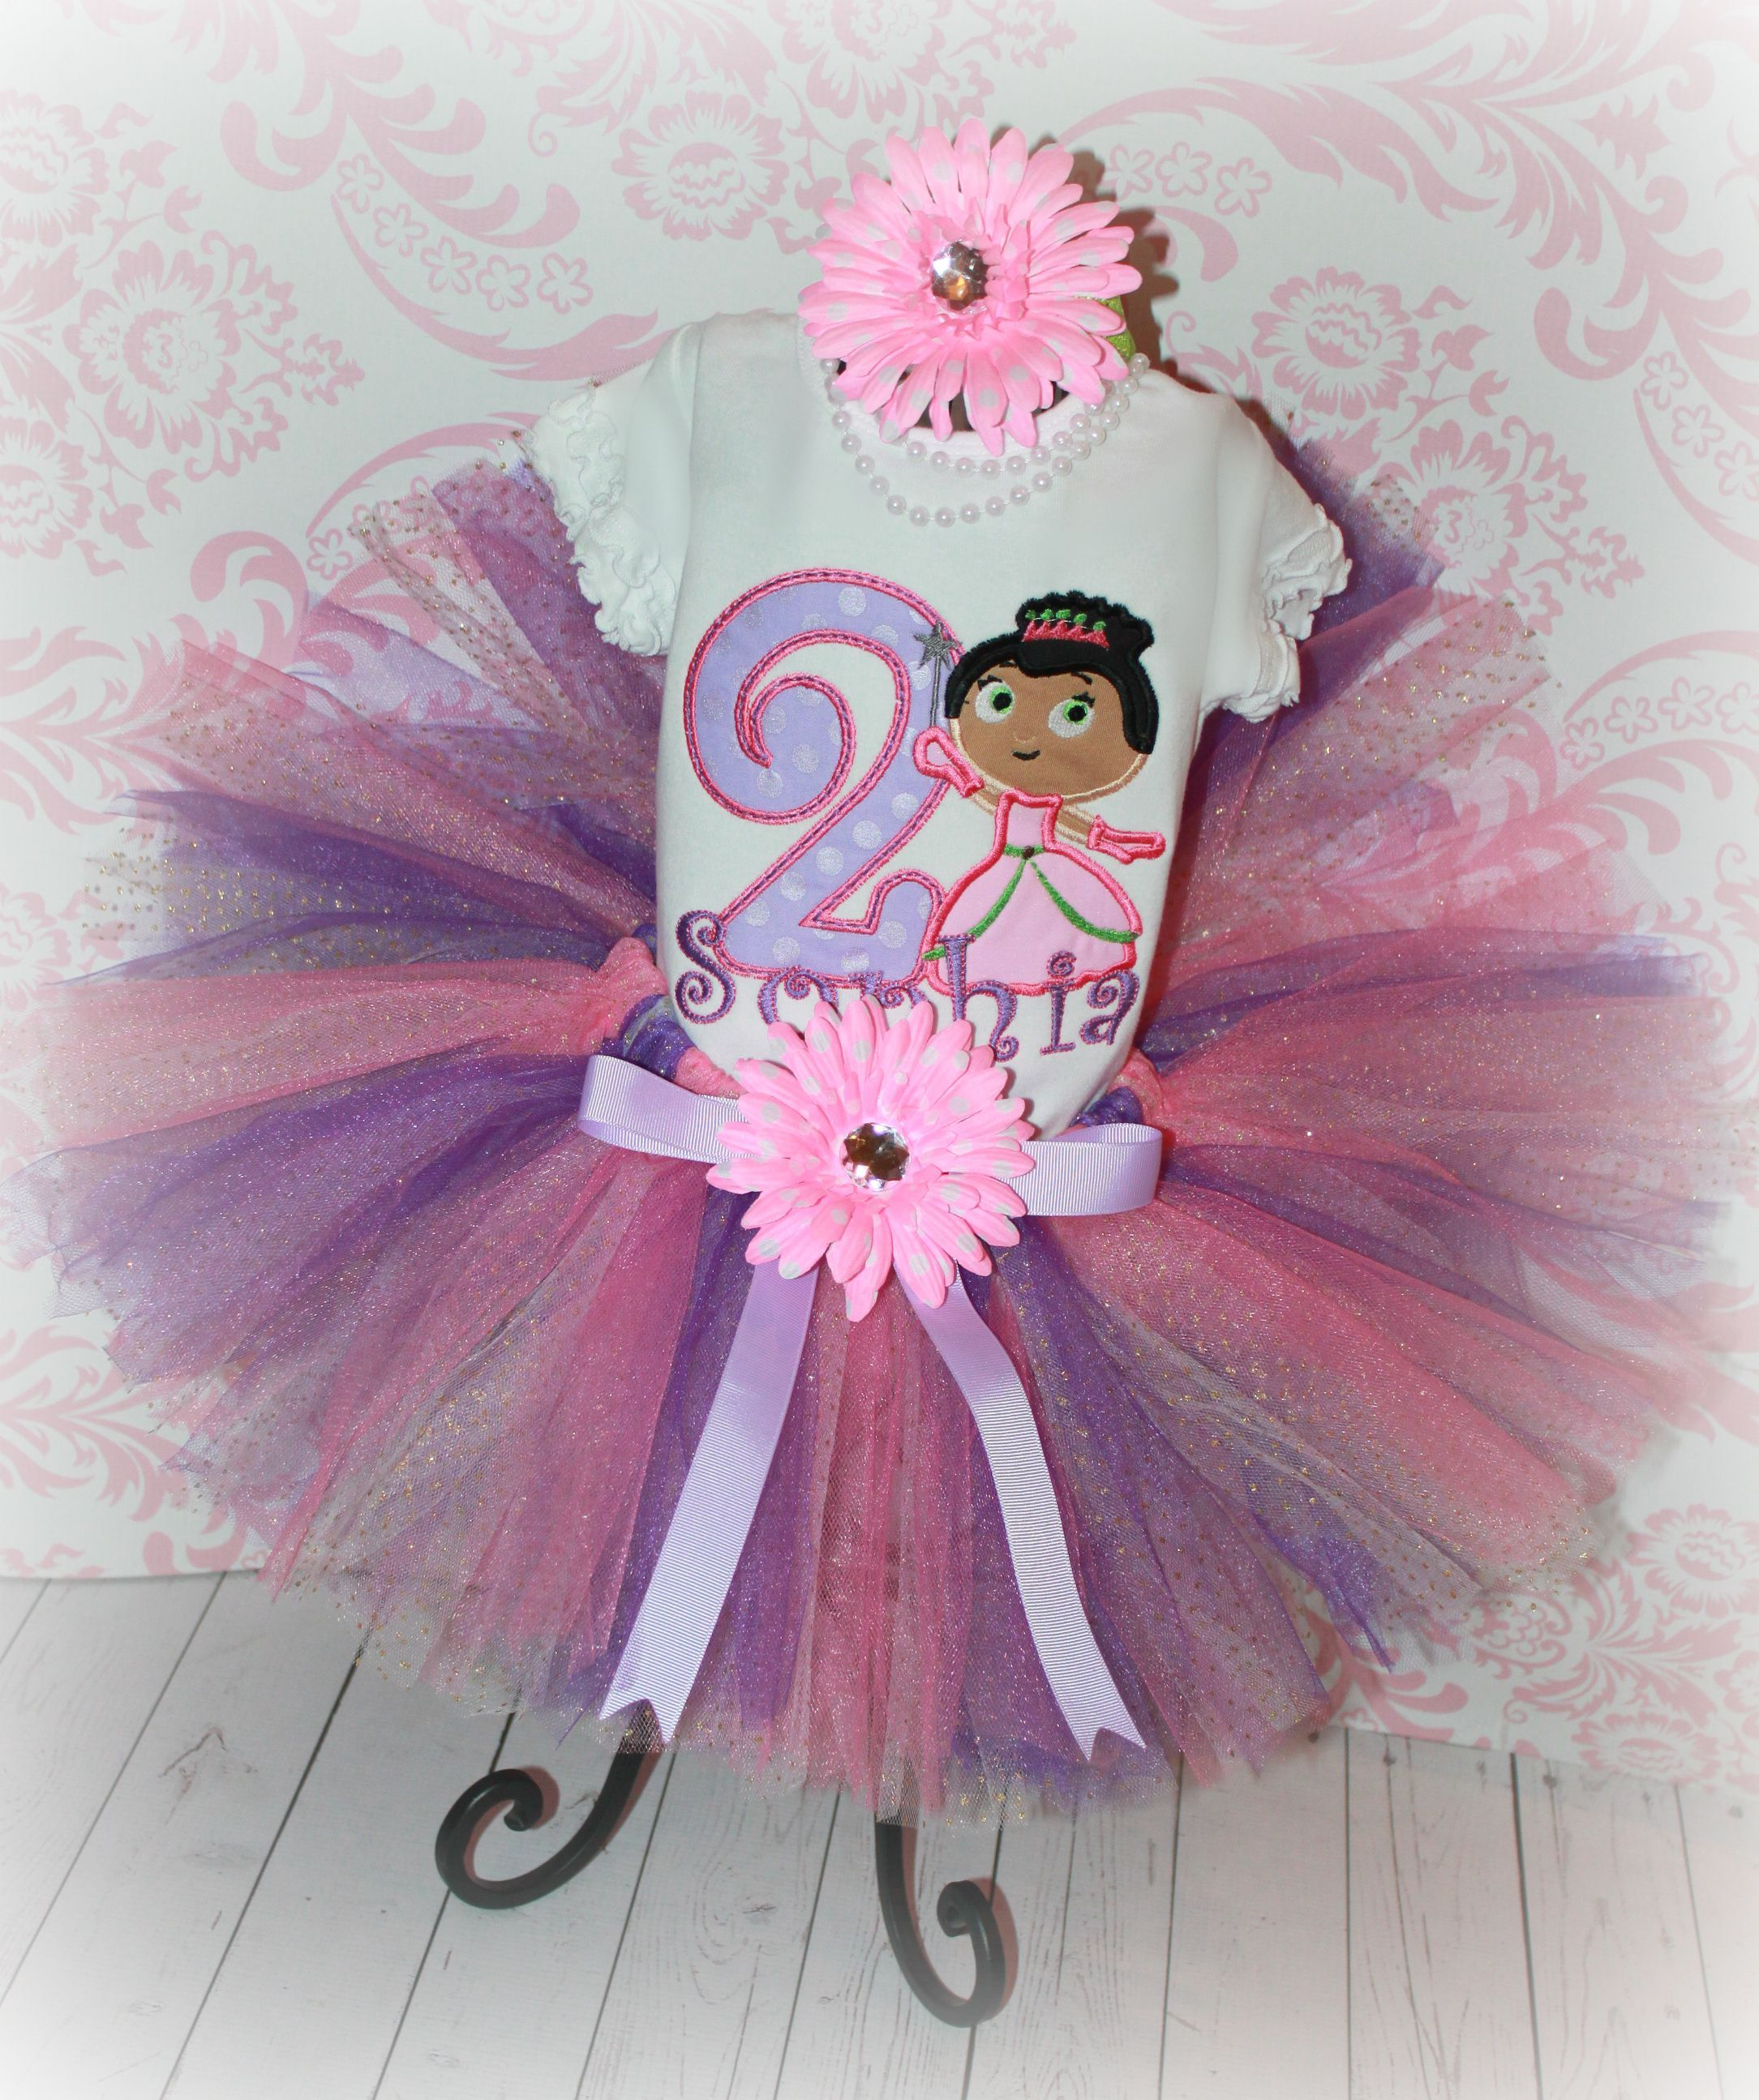 Super Why Princess Presto Pea Girls Birthday Tutu Outfit